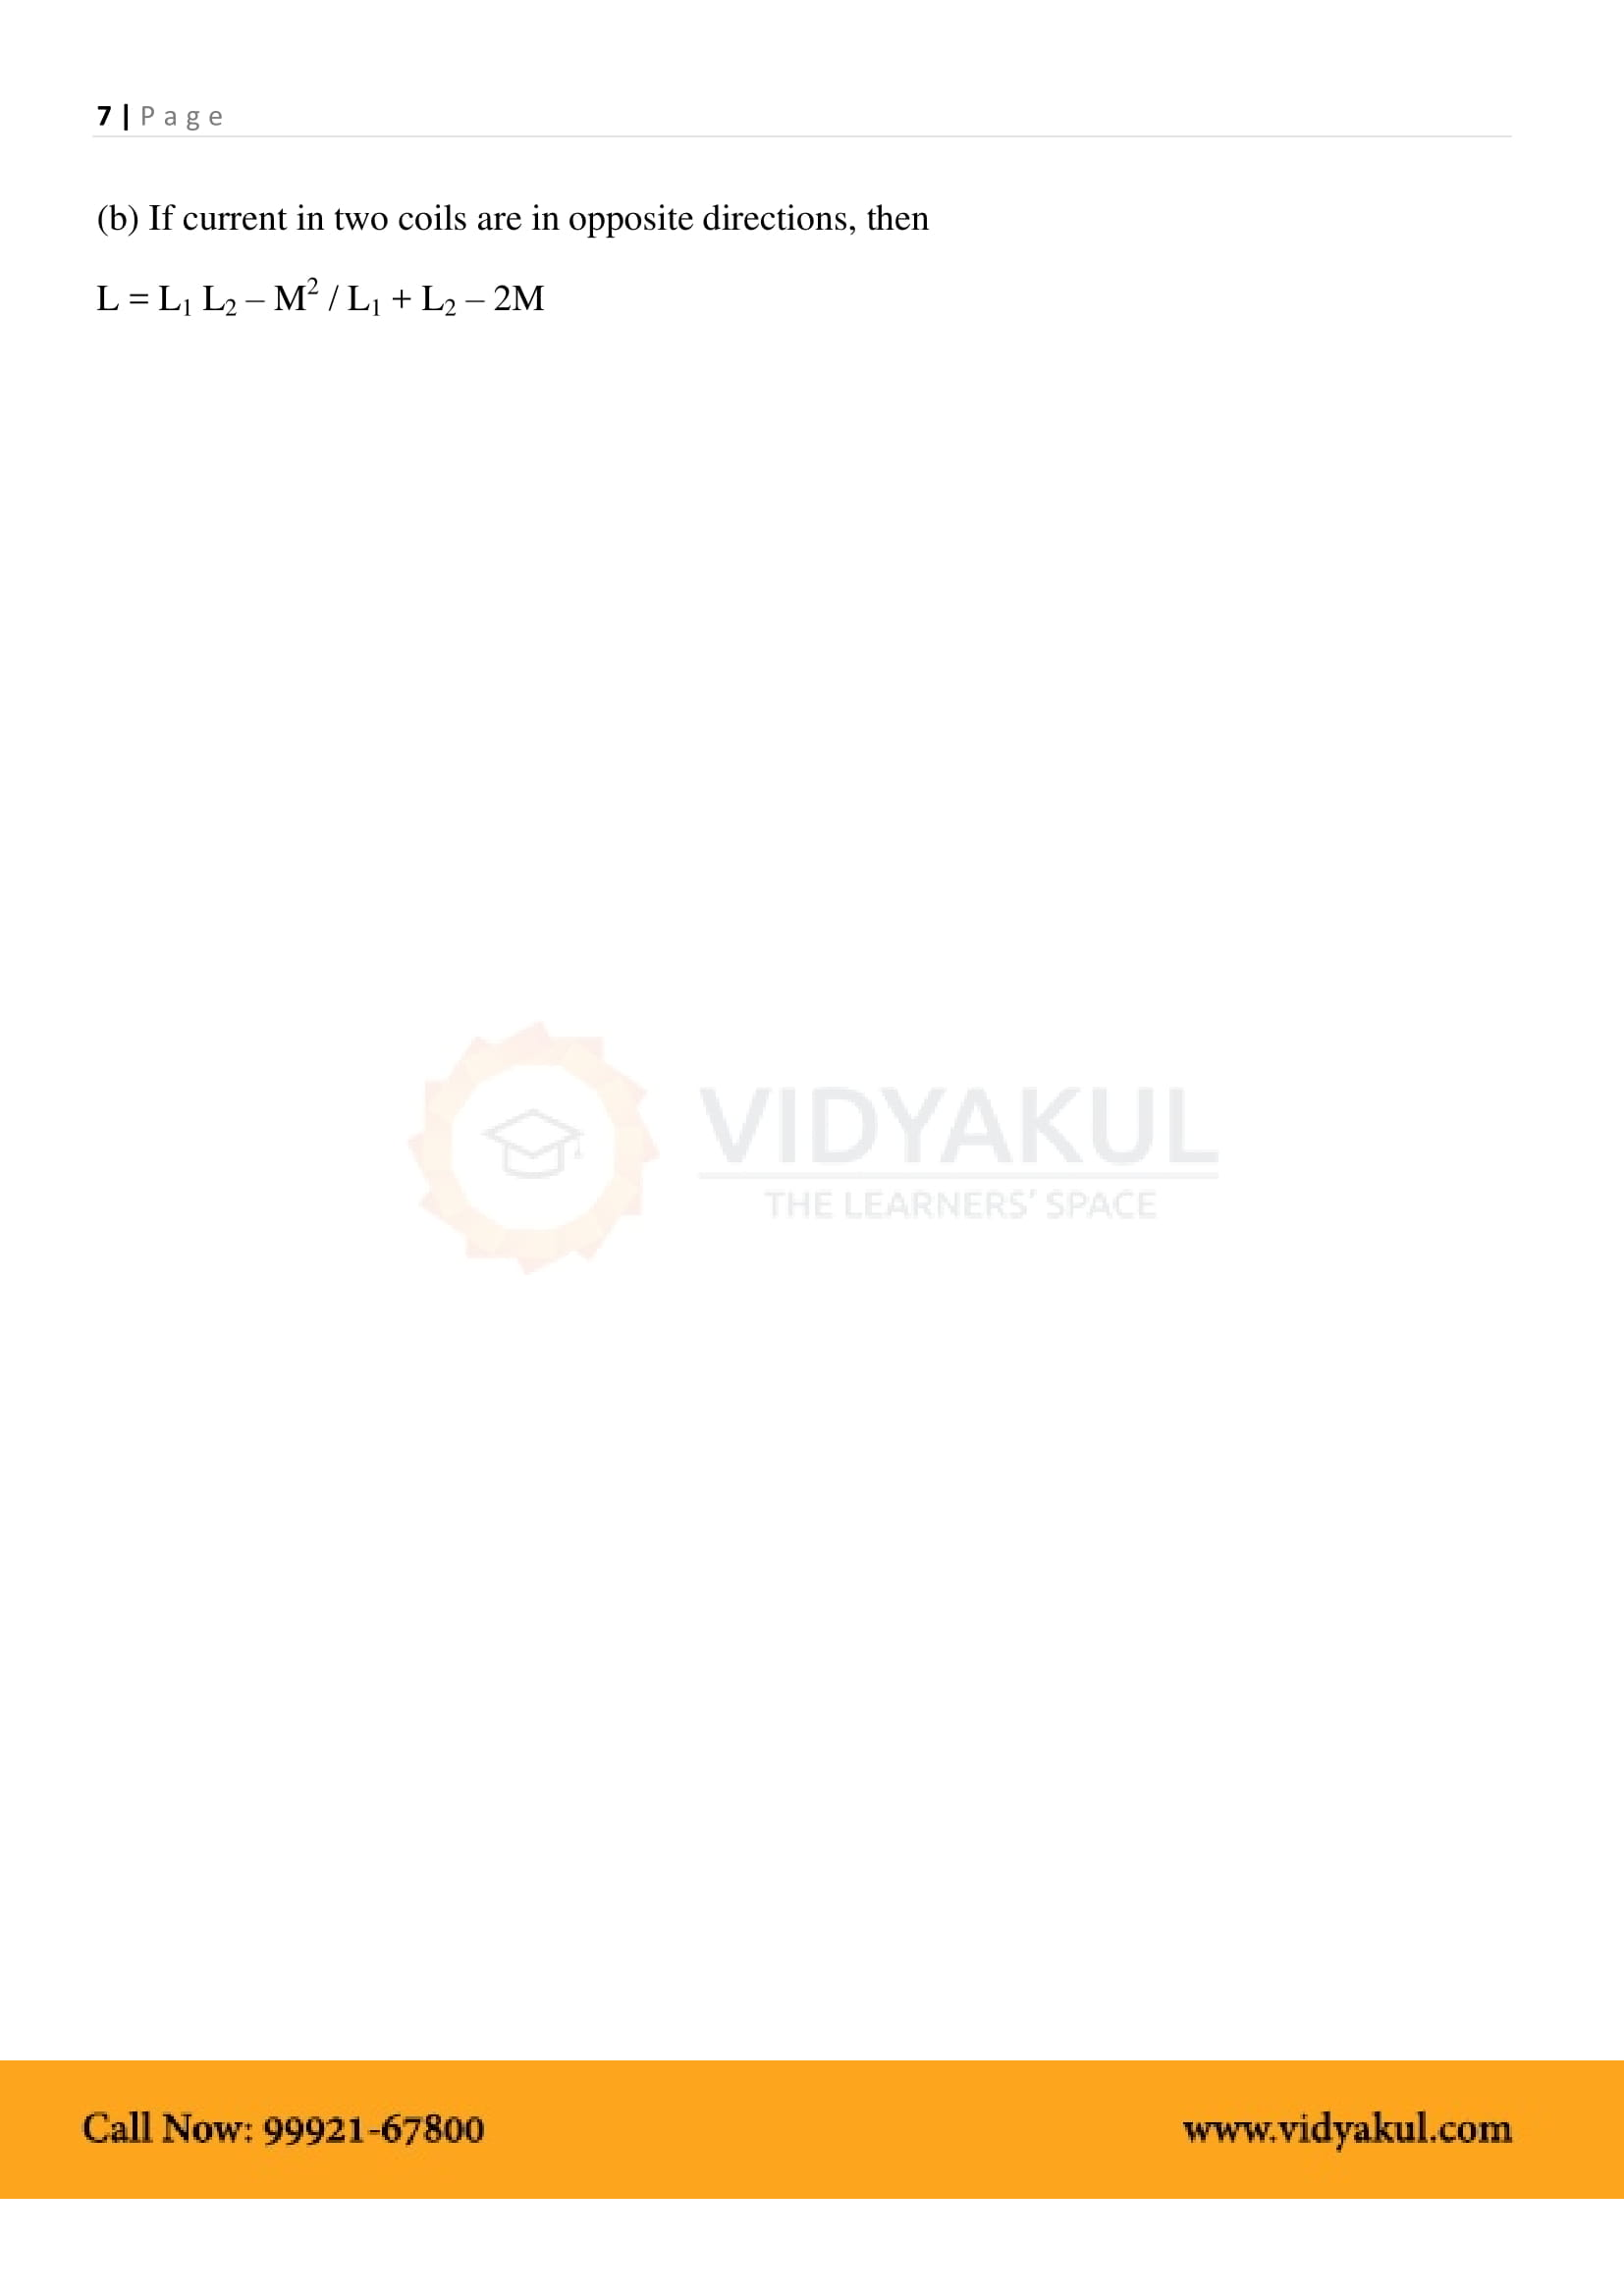 Electromagnetic Induction Class 12 Notes   Vidyakul